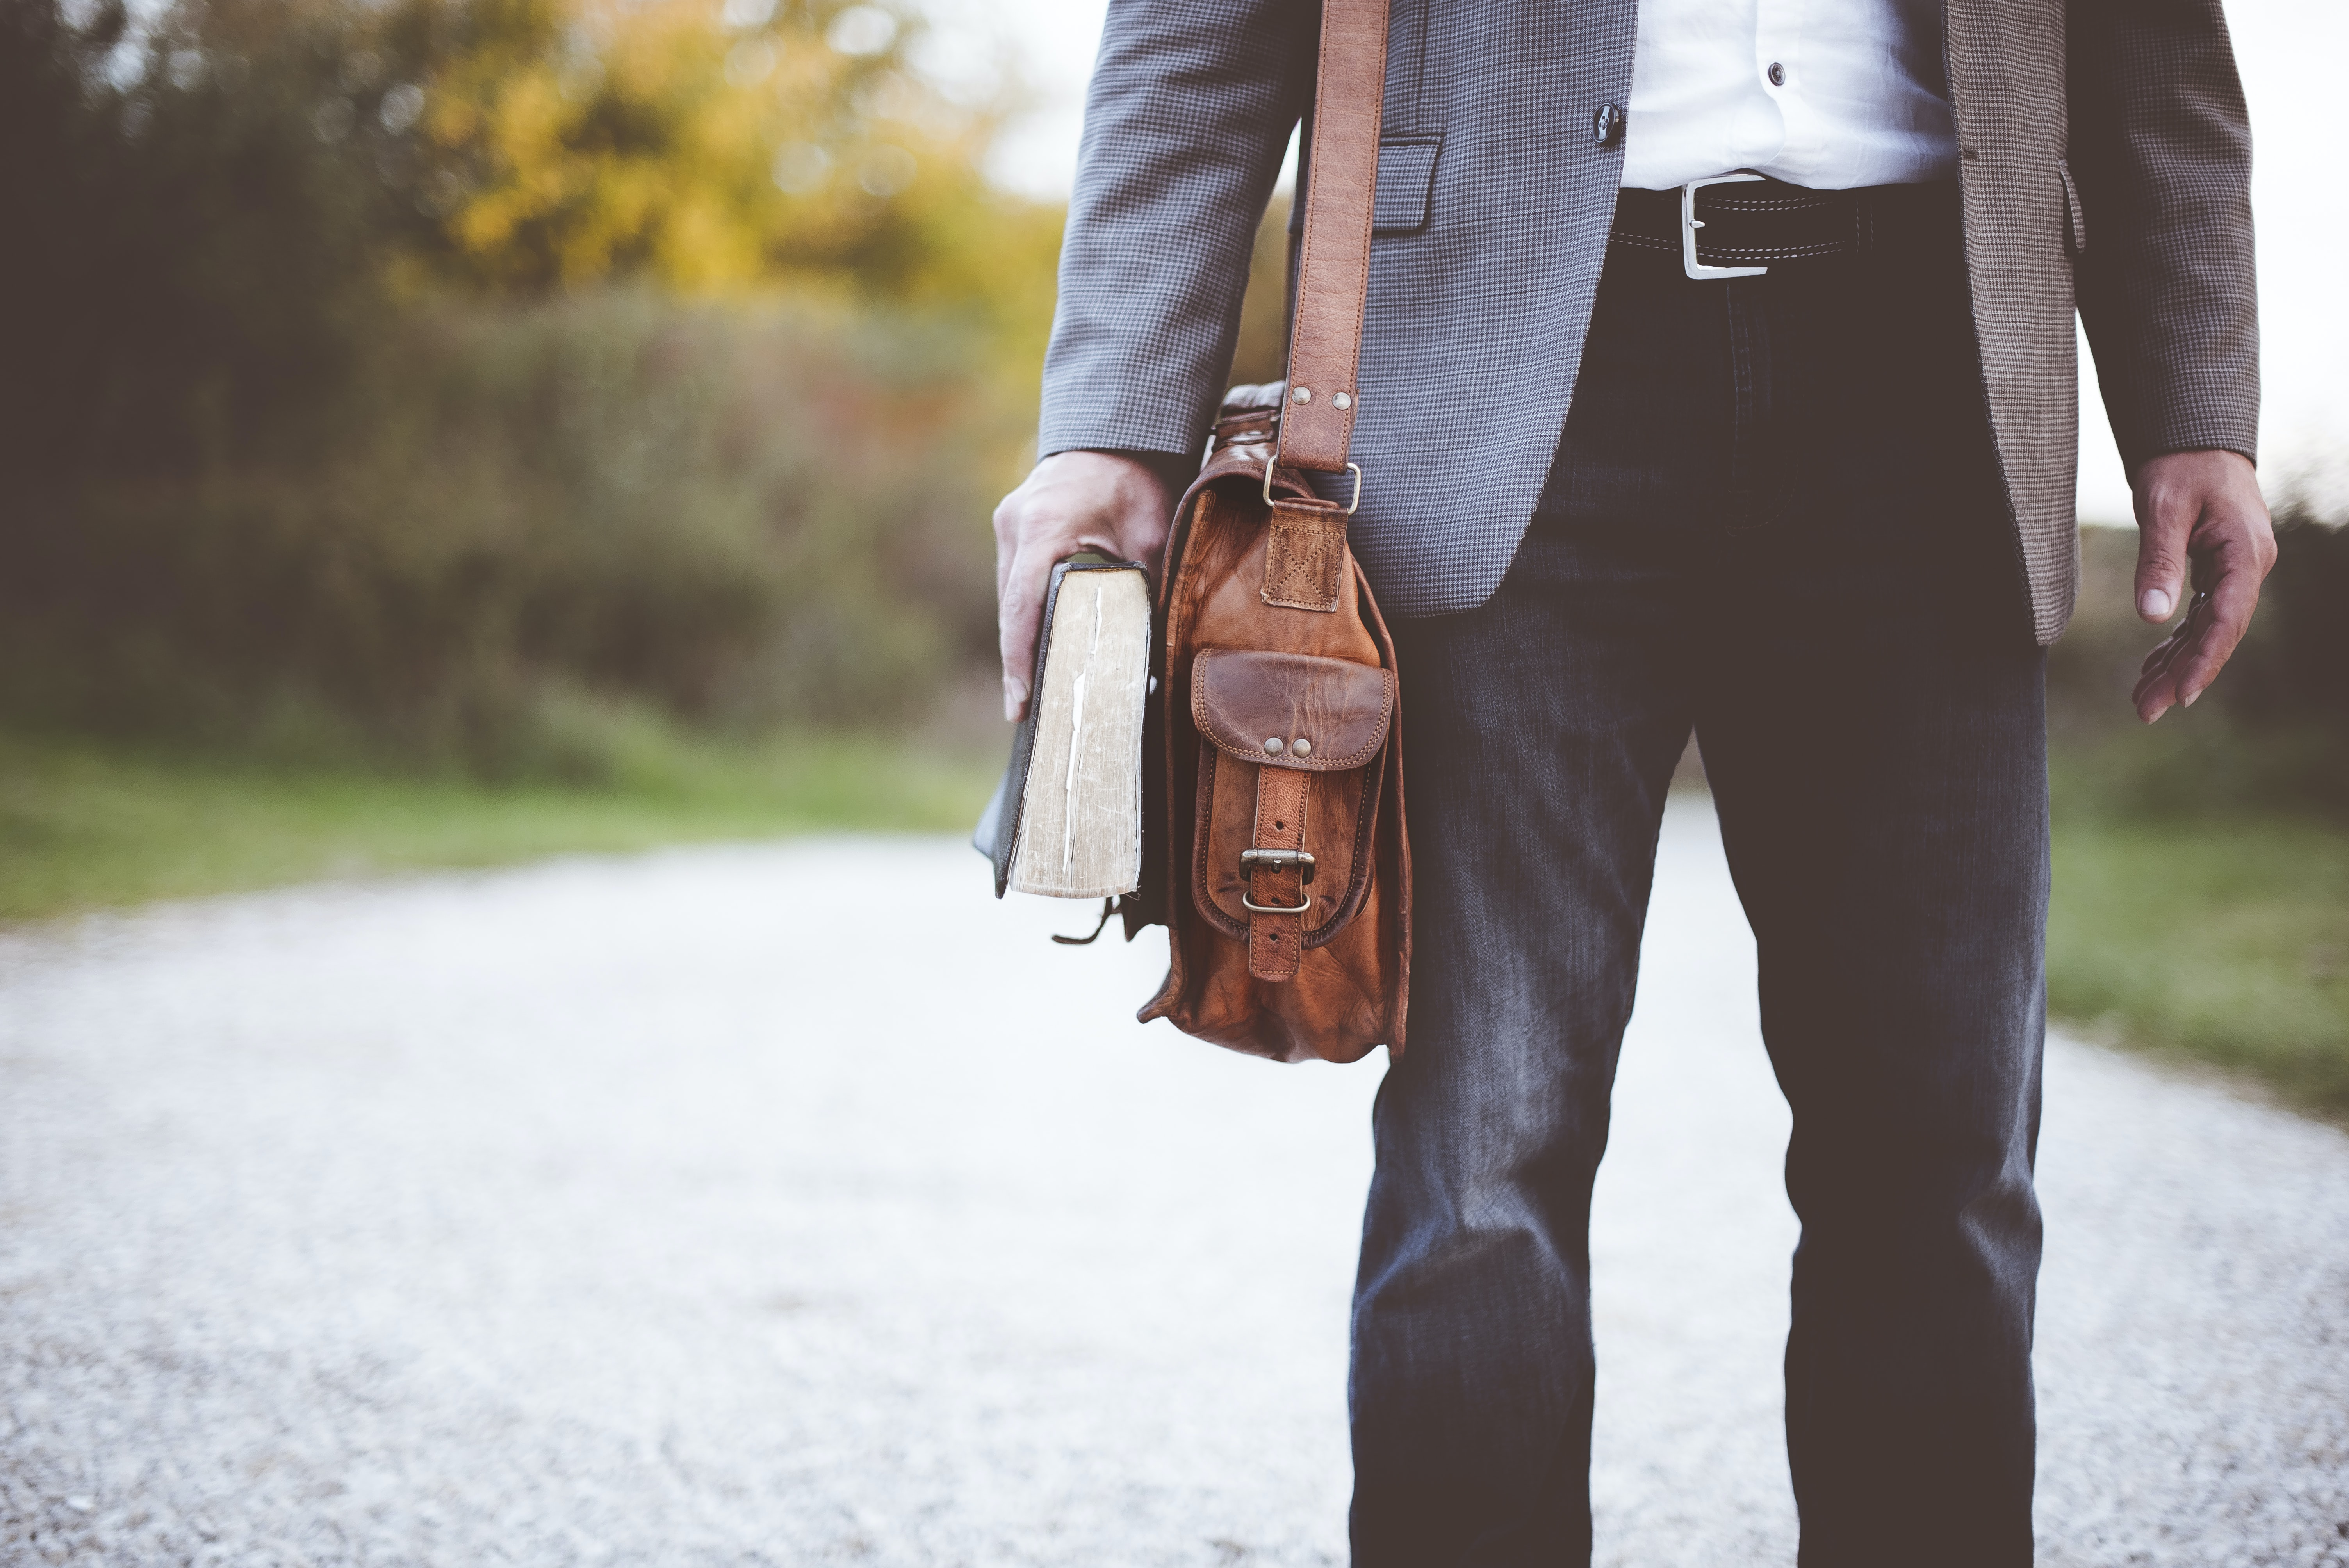 A low shot of an elegantly dressed man with a leather bag holding a book in his hand